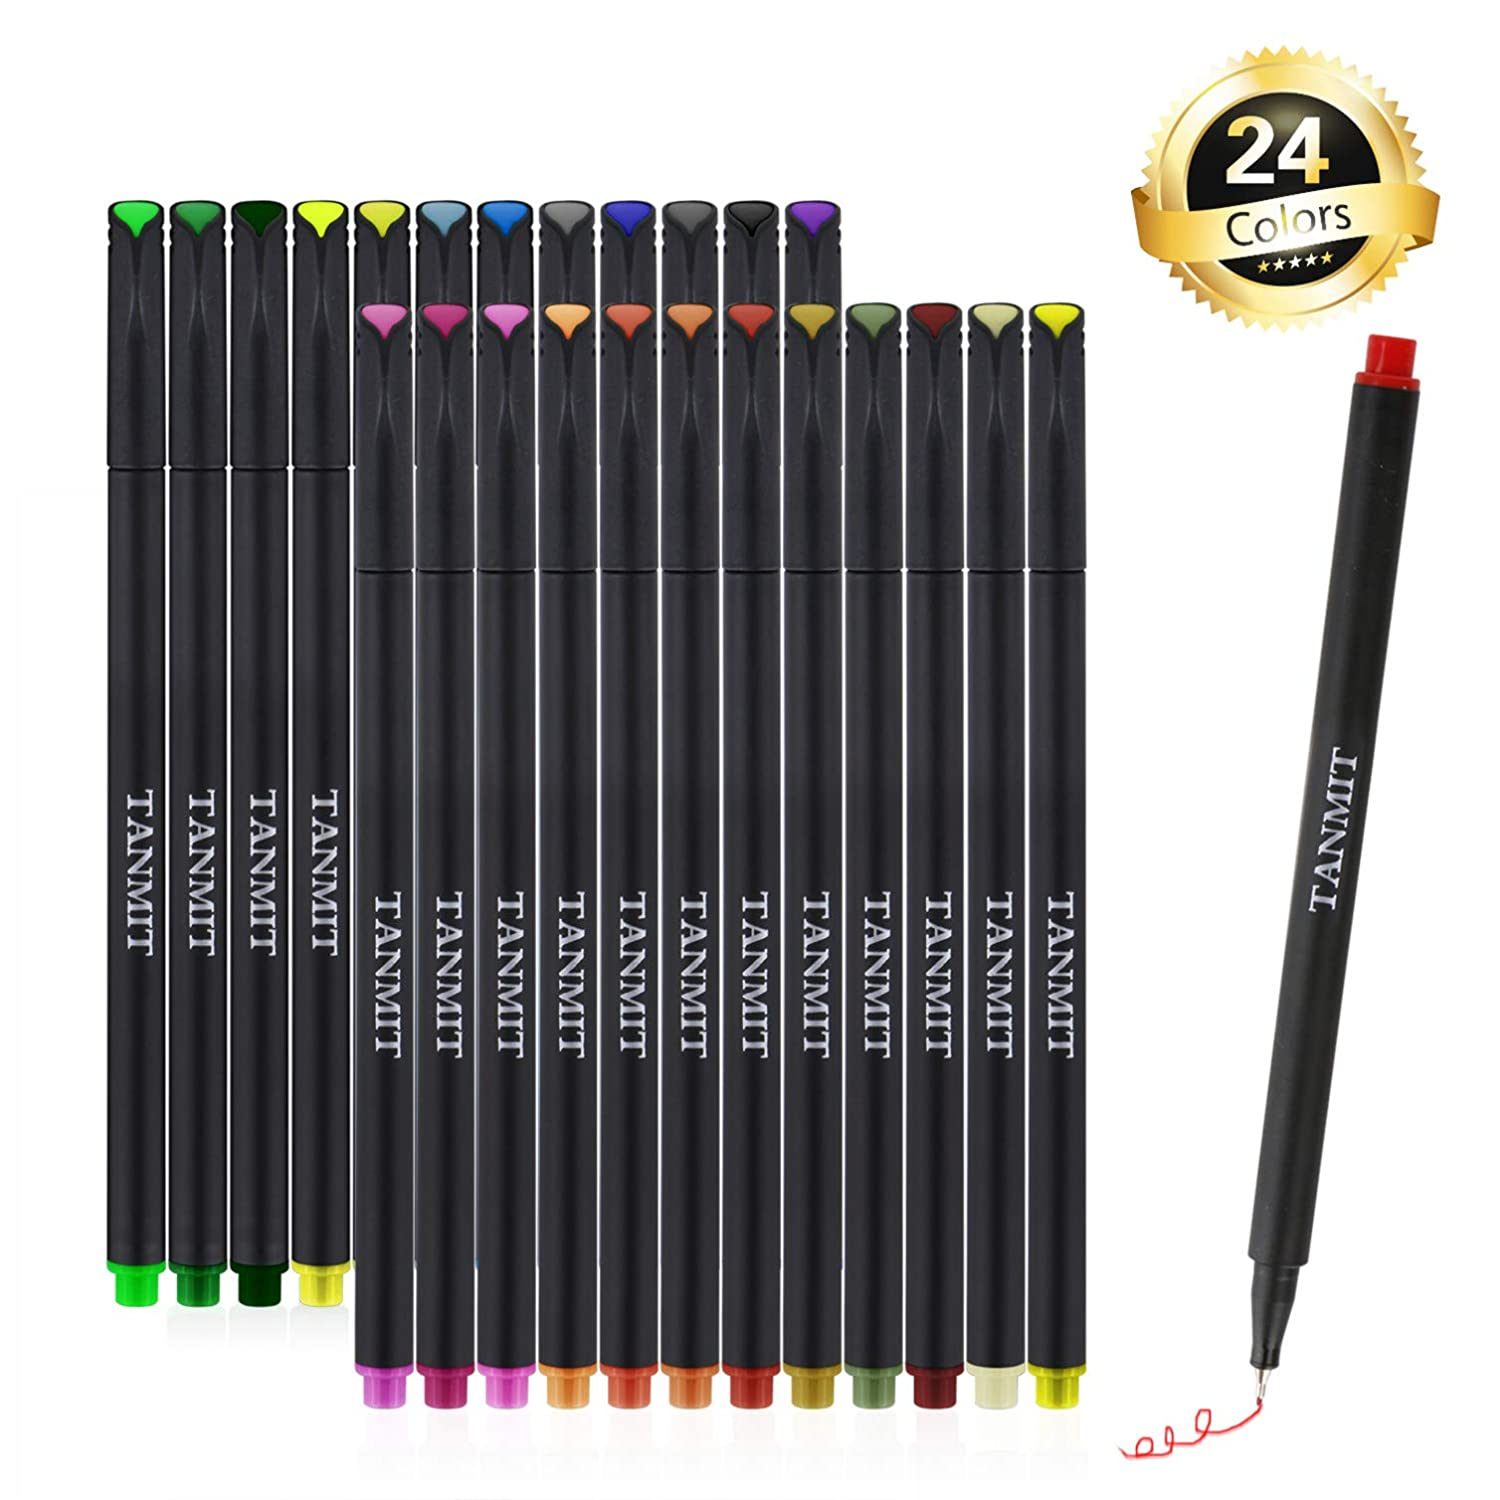 Fineliner Pens Colored Fine Tip Markers, Fine Point Bullet Journal Pens Sketch Writing Drawing Markers Set for Coloring Book Taking Note Calendar (24 Colors) ZCDF